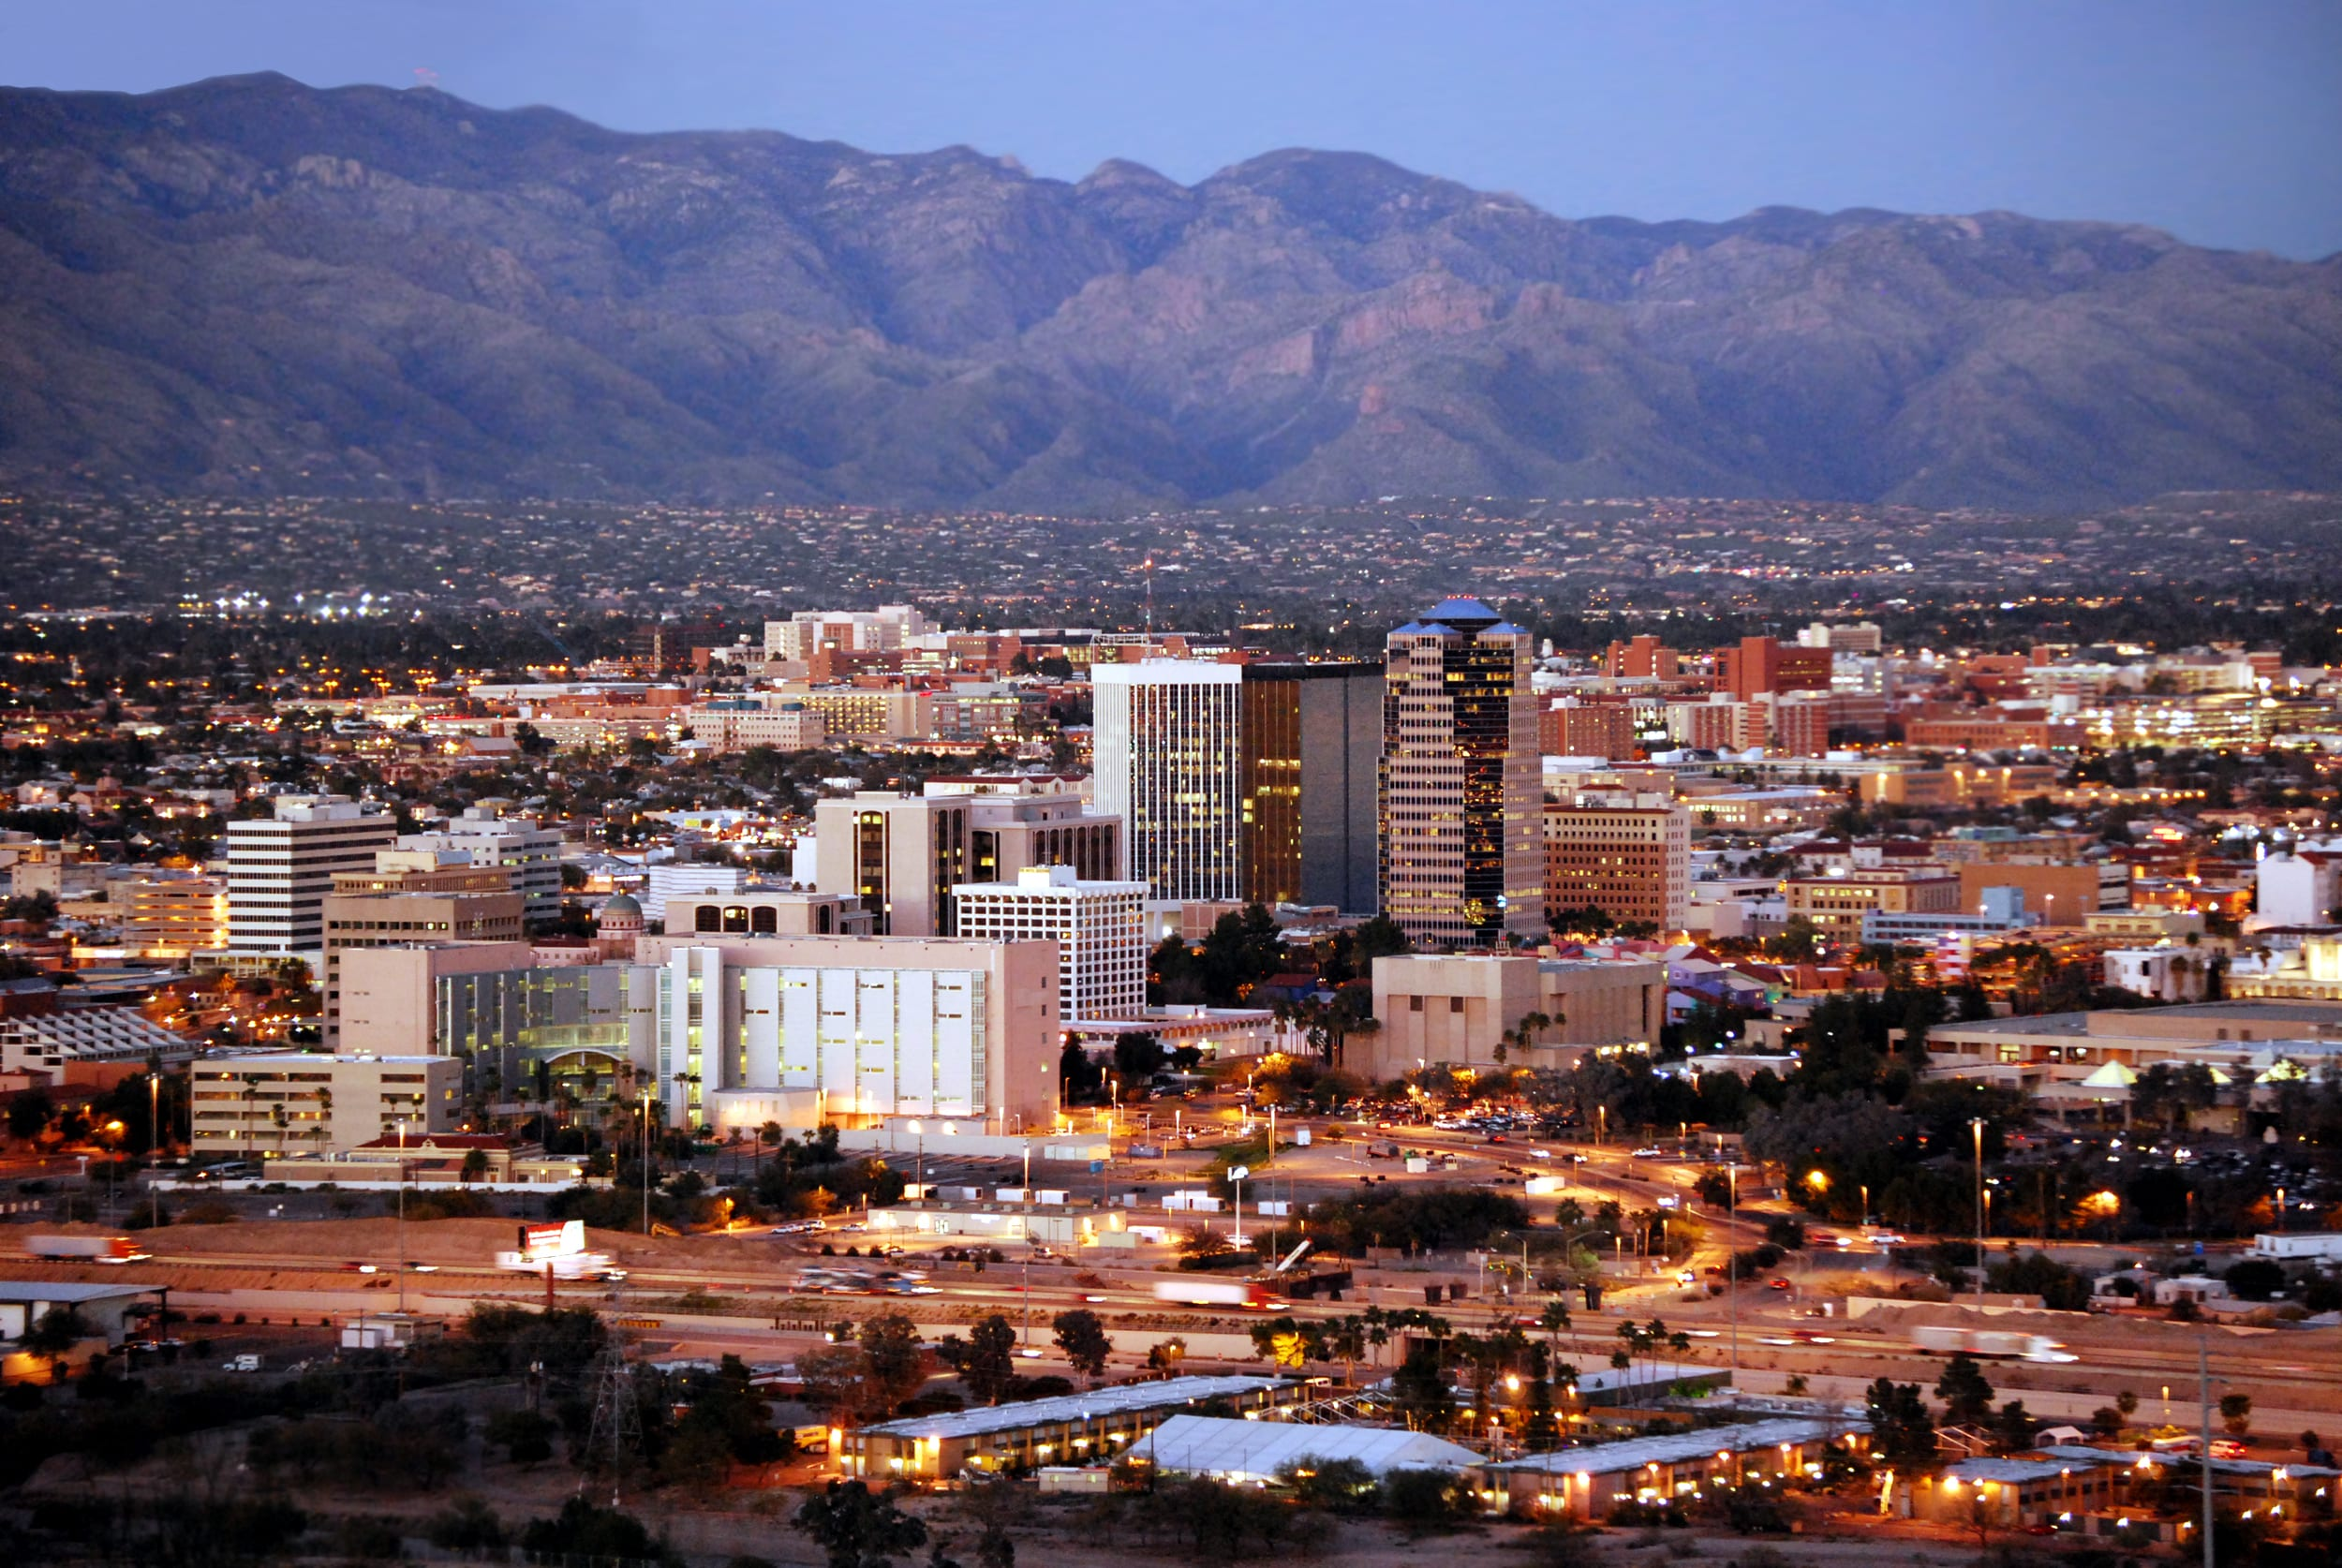 Skyline of Tucson, overlooking commercial real estate